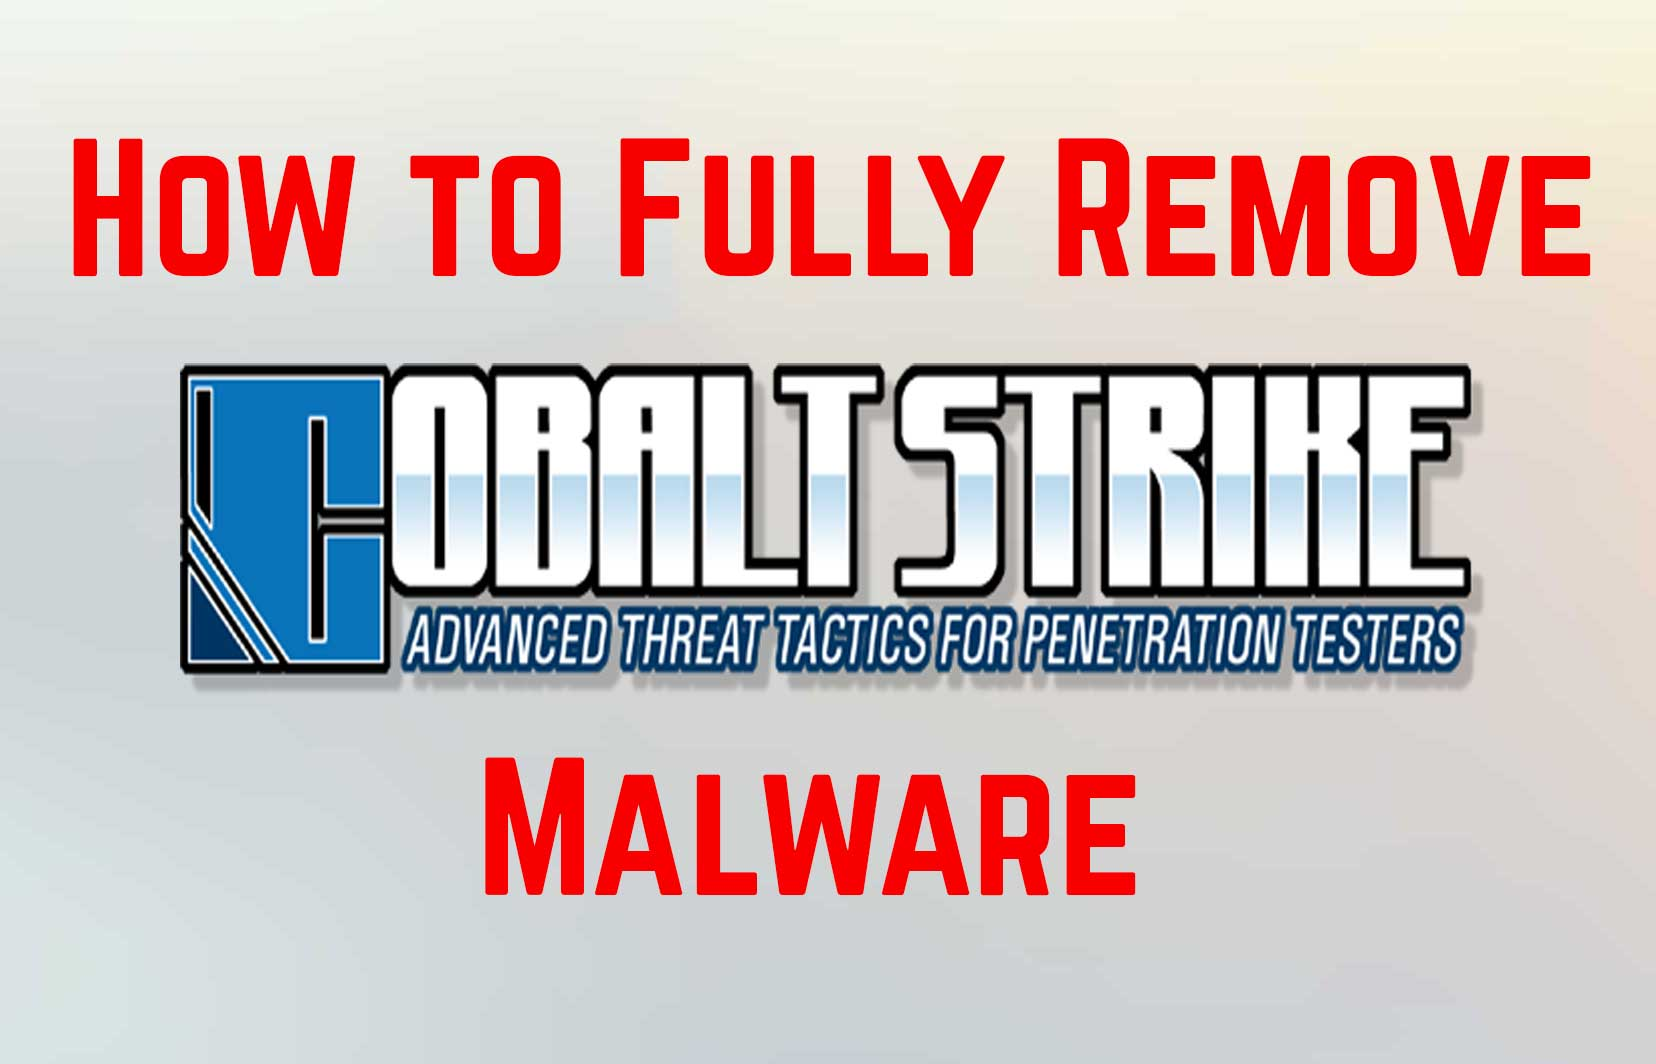 Cobalt Strike Malware (W32/Cobalt) - What is It and How to Remove It